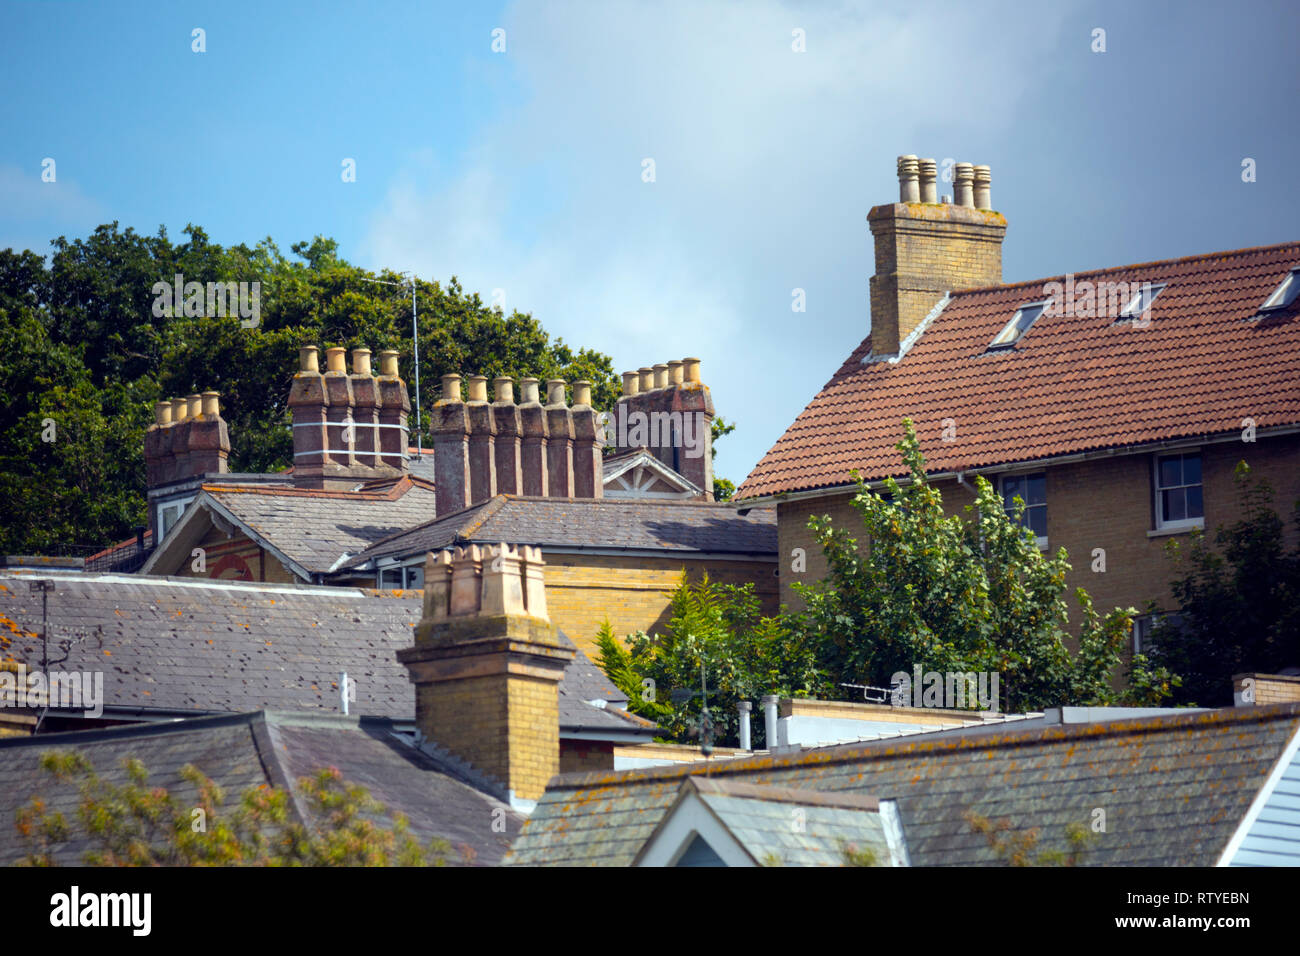 chimney,pots,roof,roofs, houses, ridge,tiles, gable,end,ends, - Stock Image